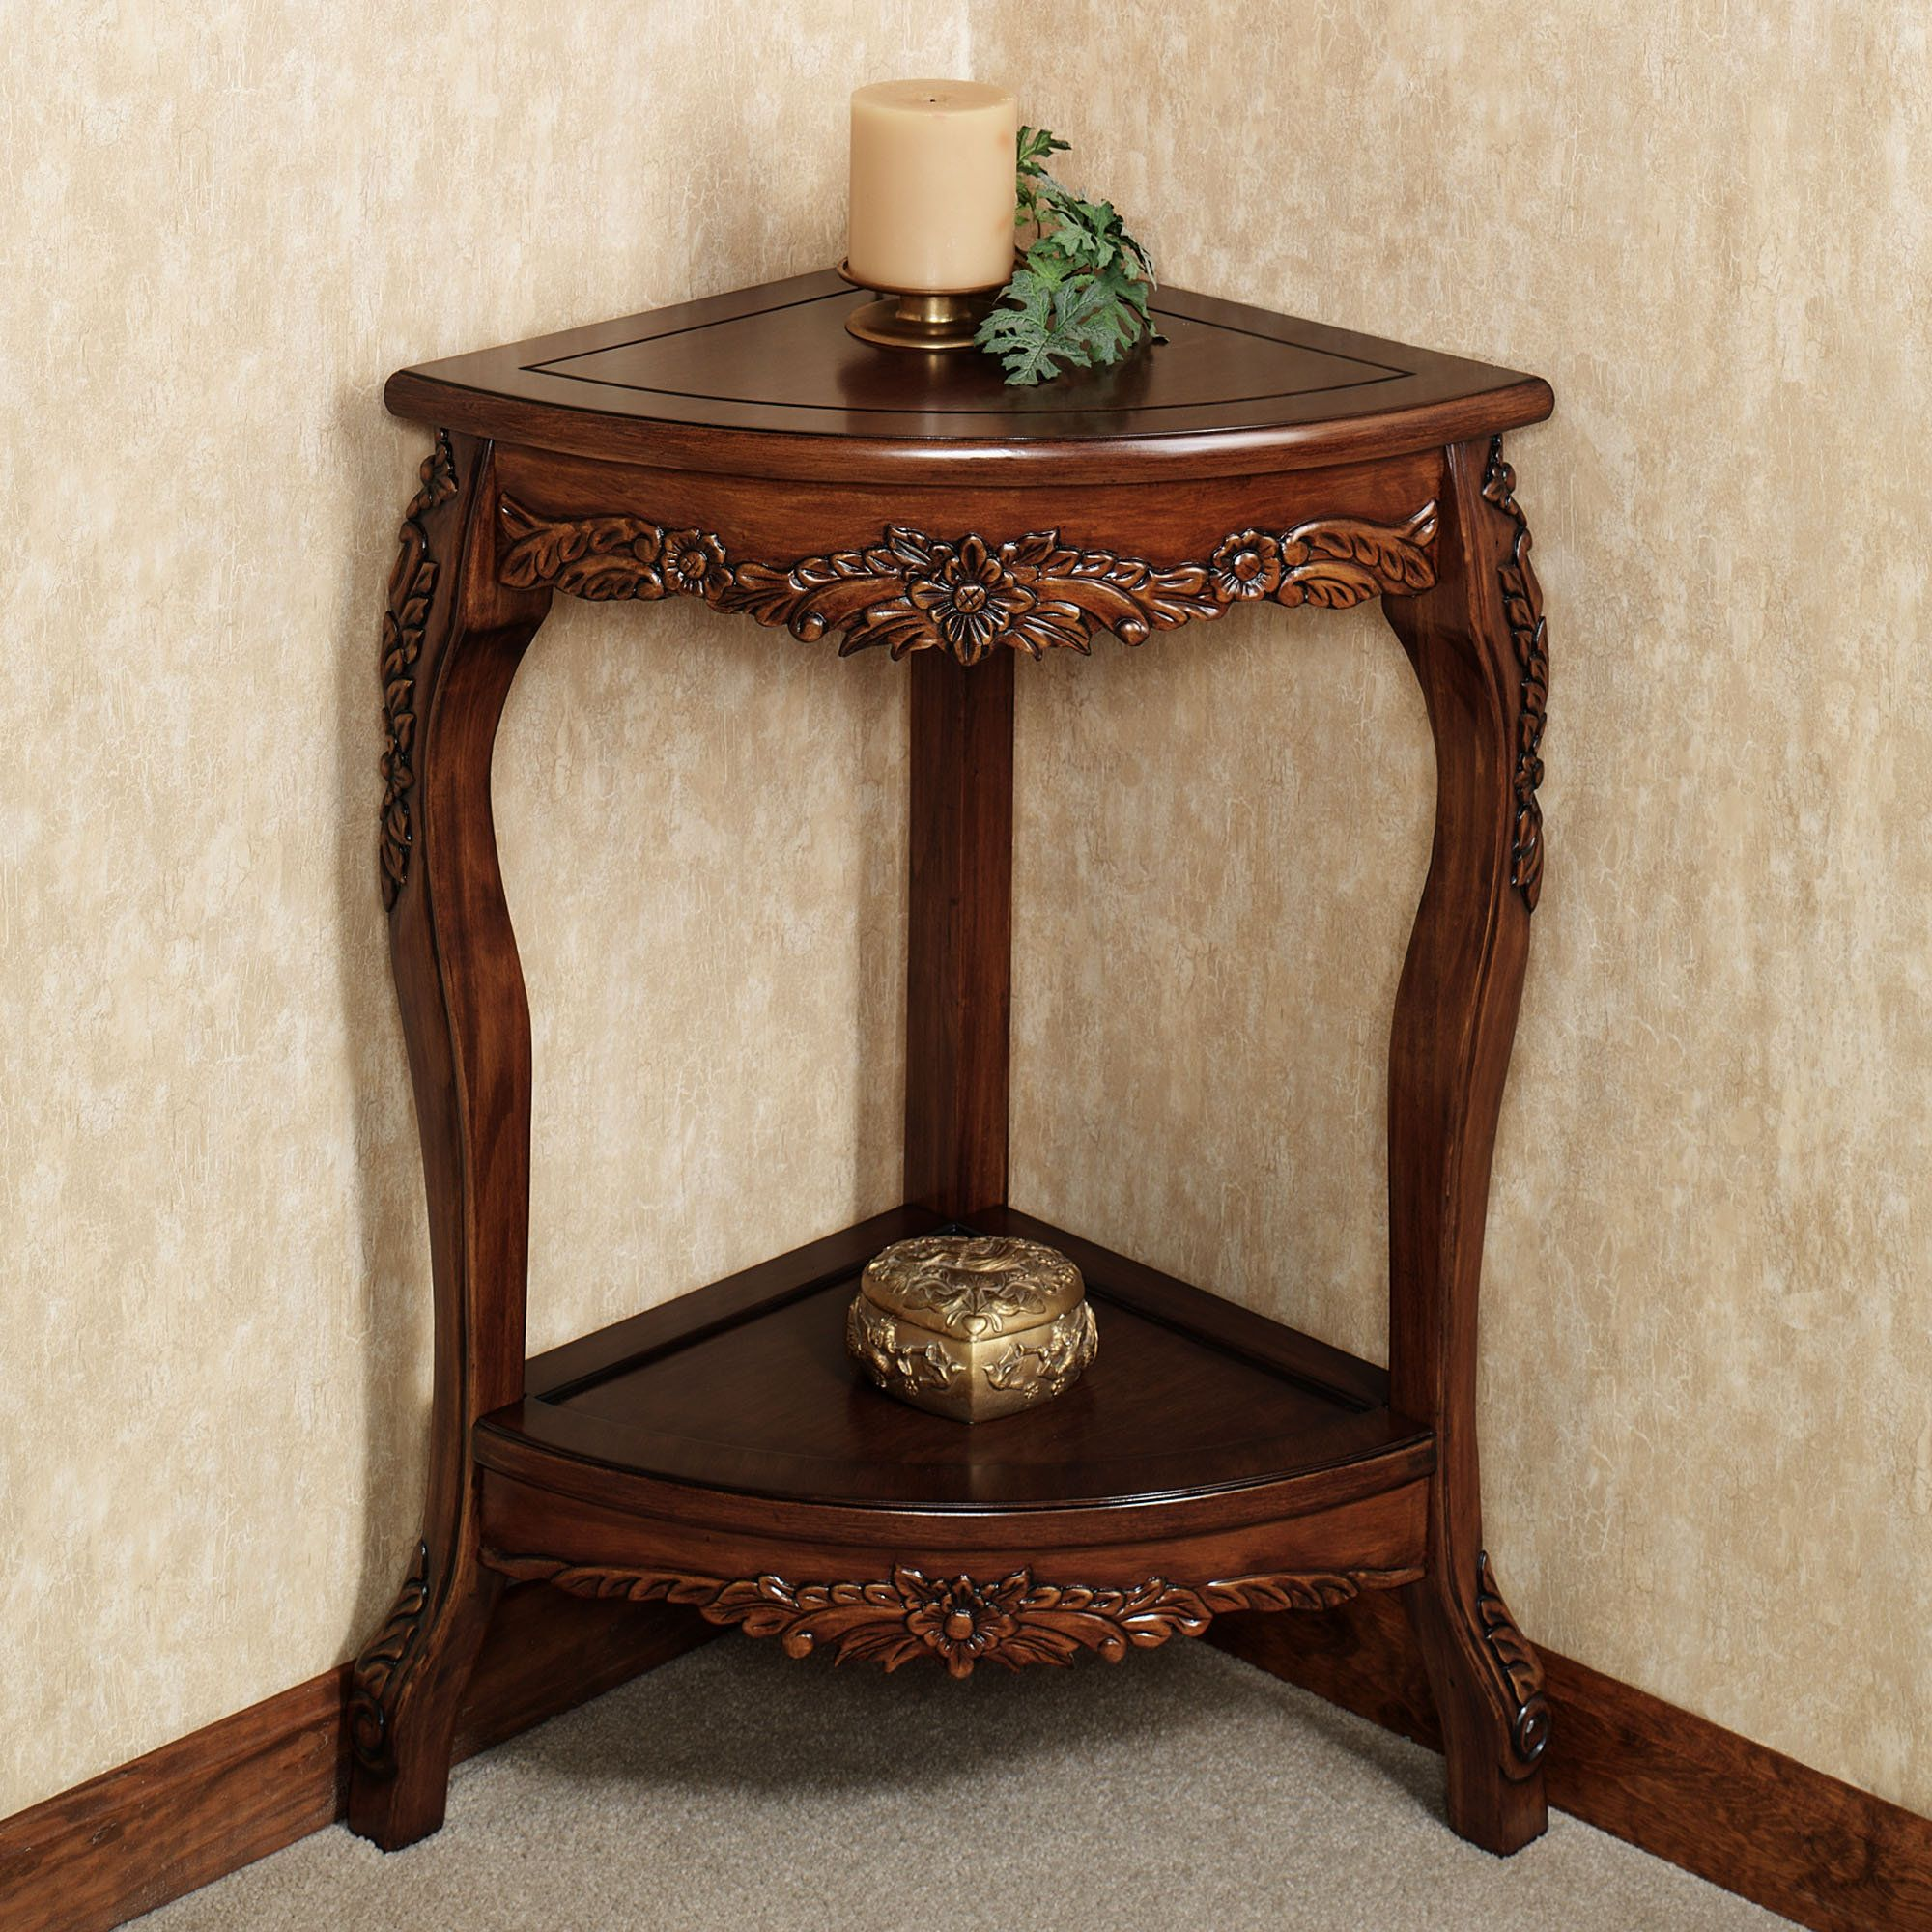 Various Options For Corner Accent Table Design Vitalofc Decor In